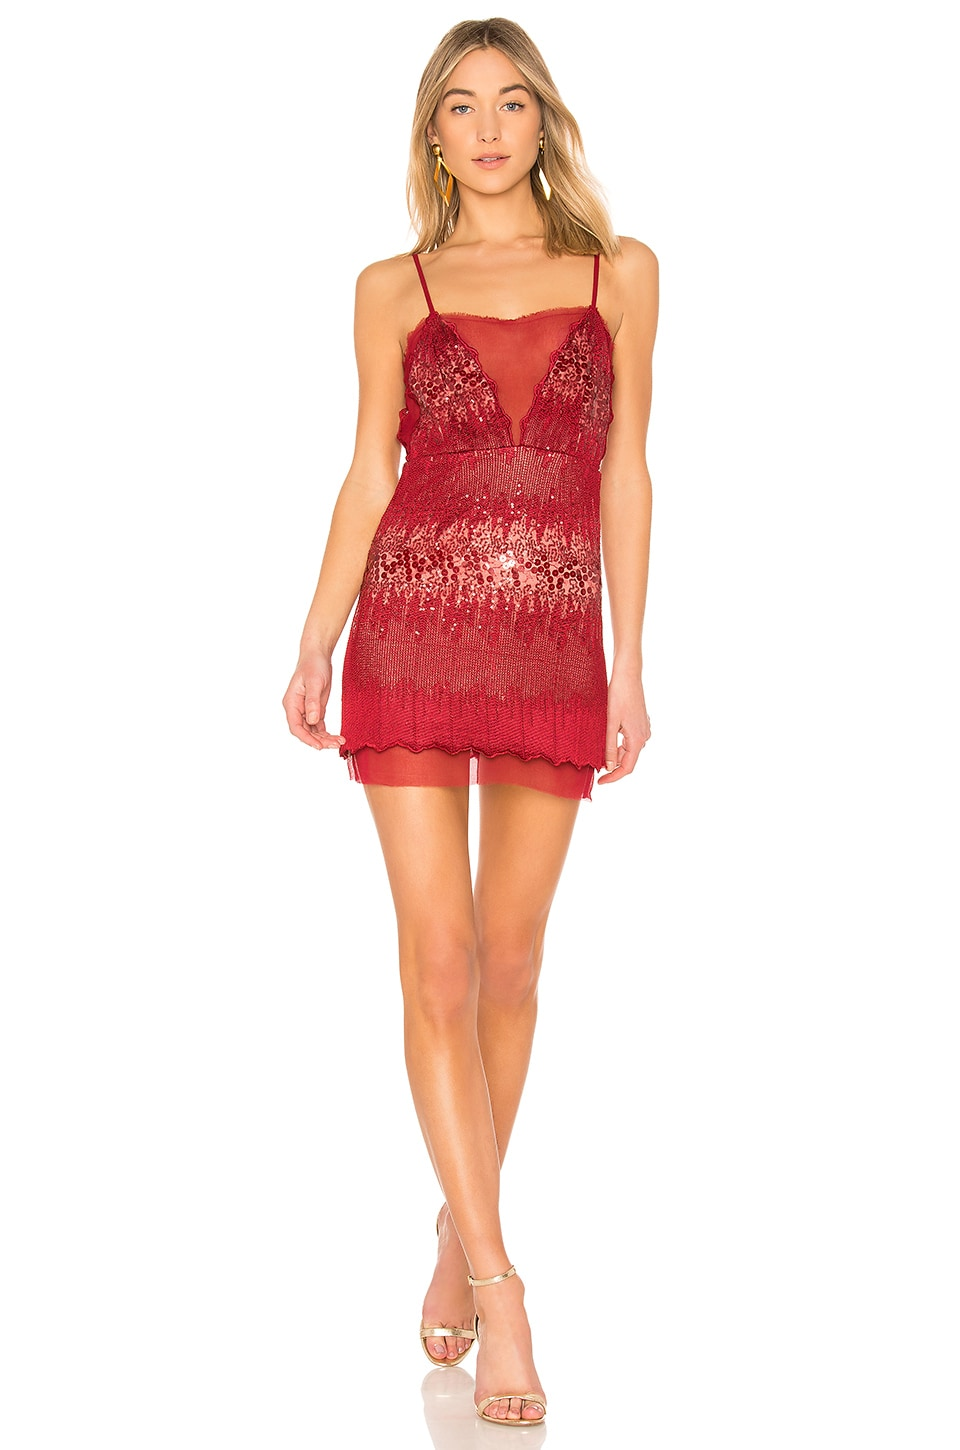 X by NBD Gio Dress in Flame